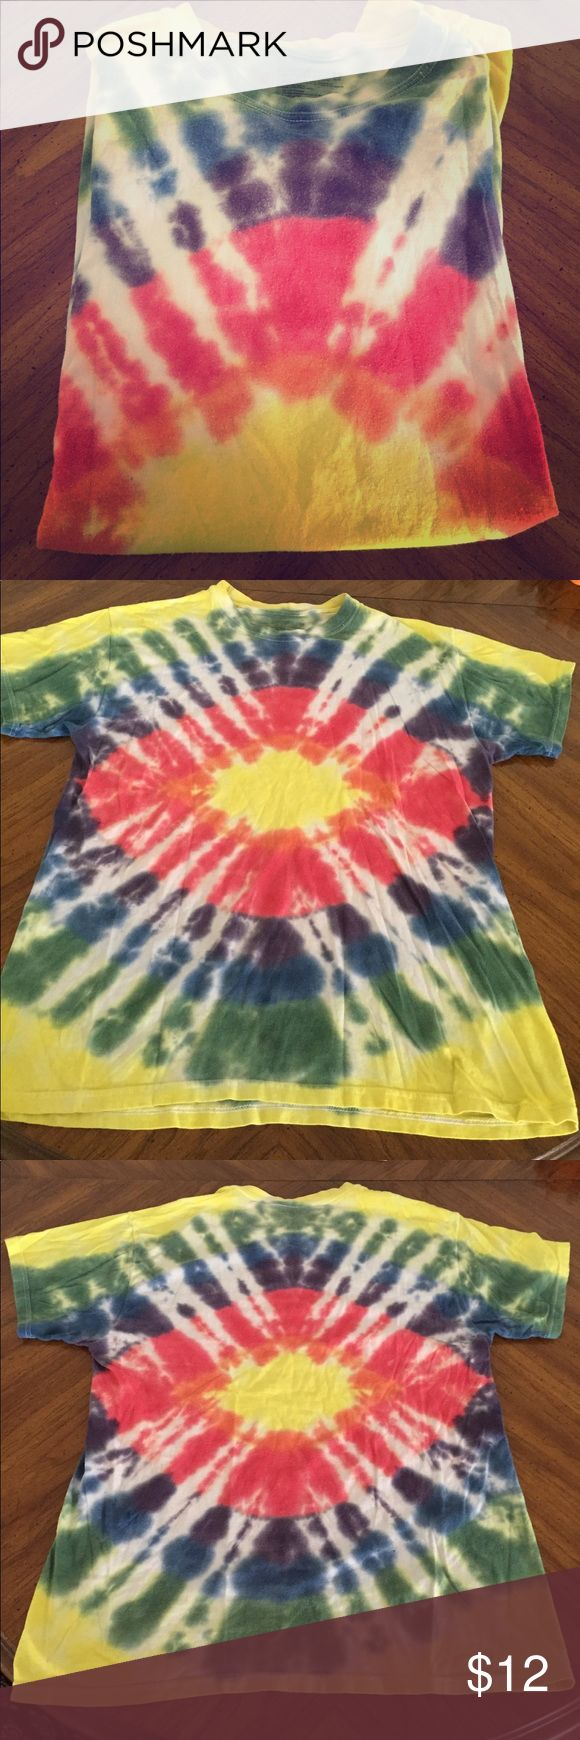 Tie dyed shirt Tie dyed shirt. Hanes comfort soft shirt. Hand dyed. Cool rainbow colored design. Regular wear. Will except all reasonable offers! Hanes Tops Tees - Short Sleeve